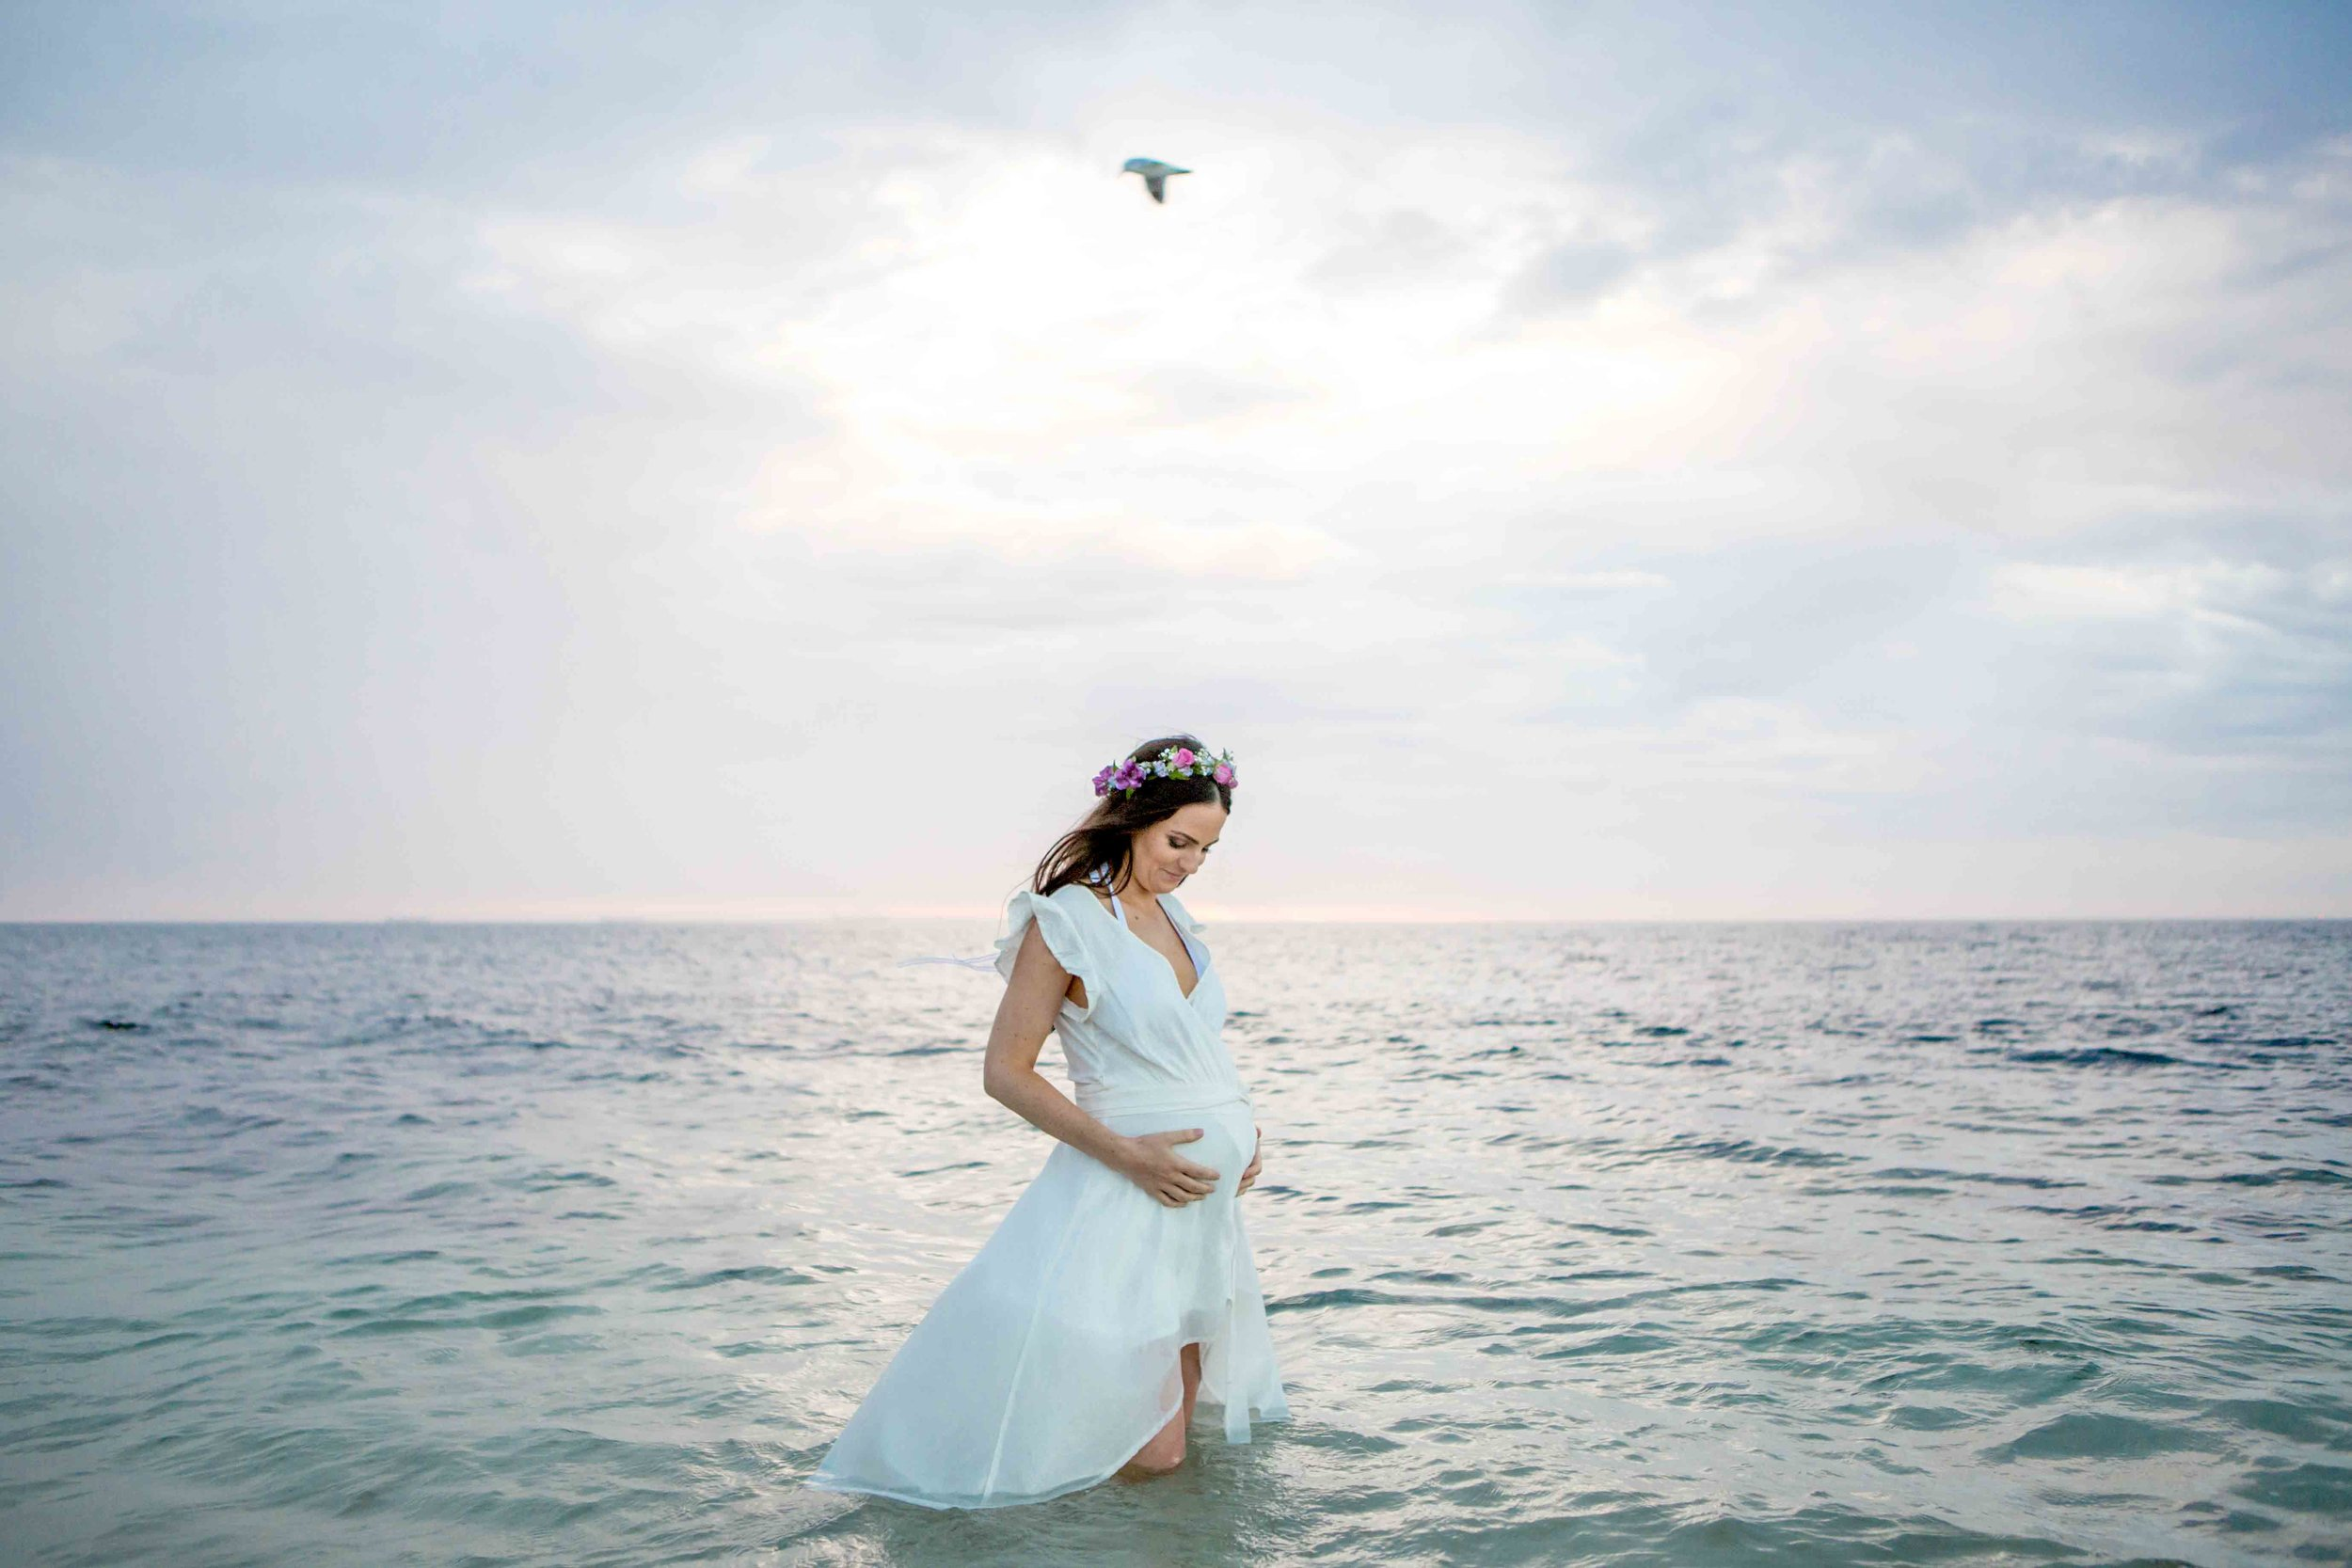 Pregnancy/Maternity Photography Perth